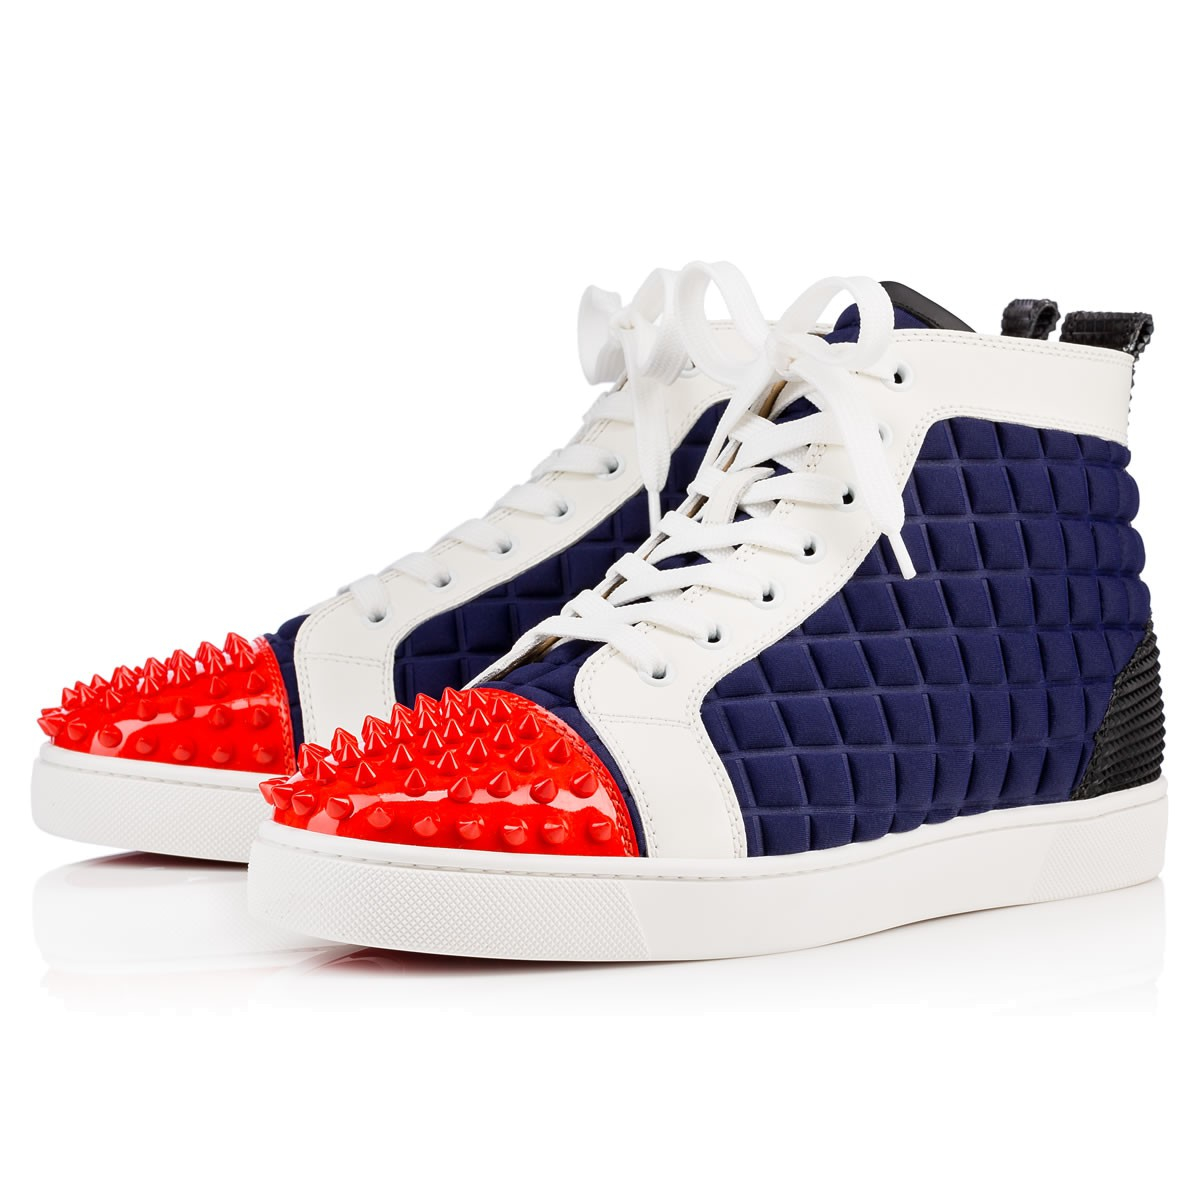 Christian Louboutin Mens Shoes Nyc